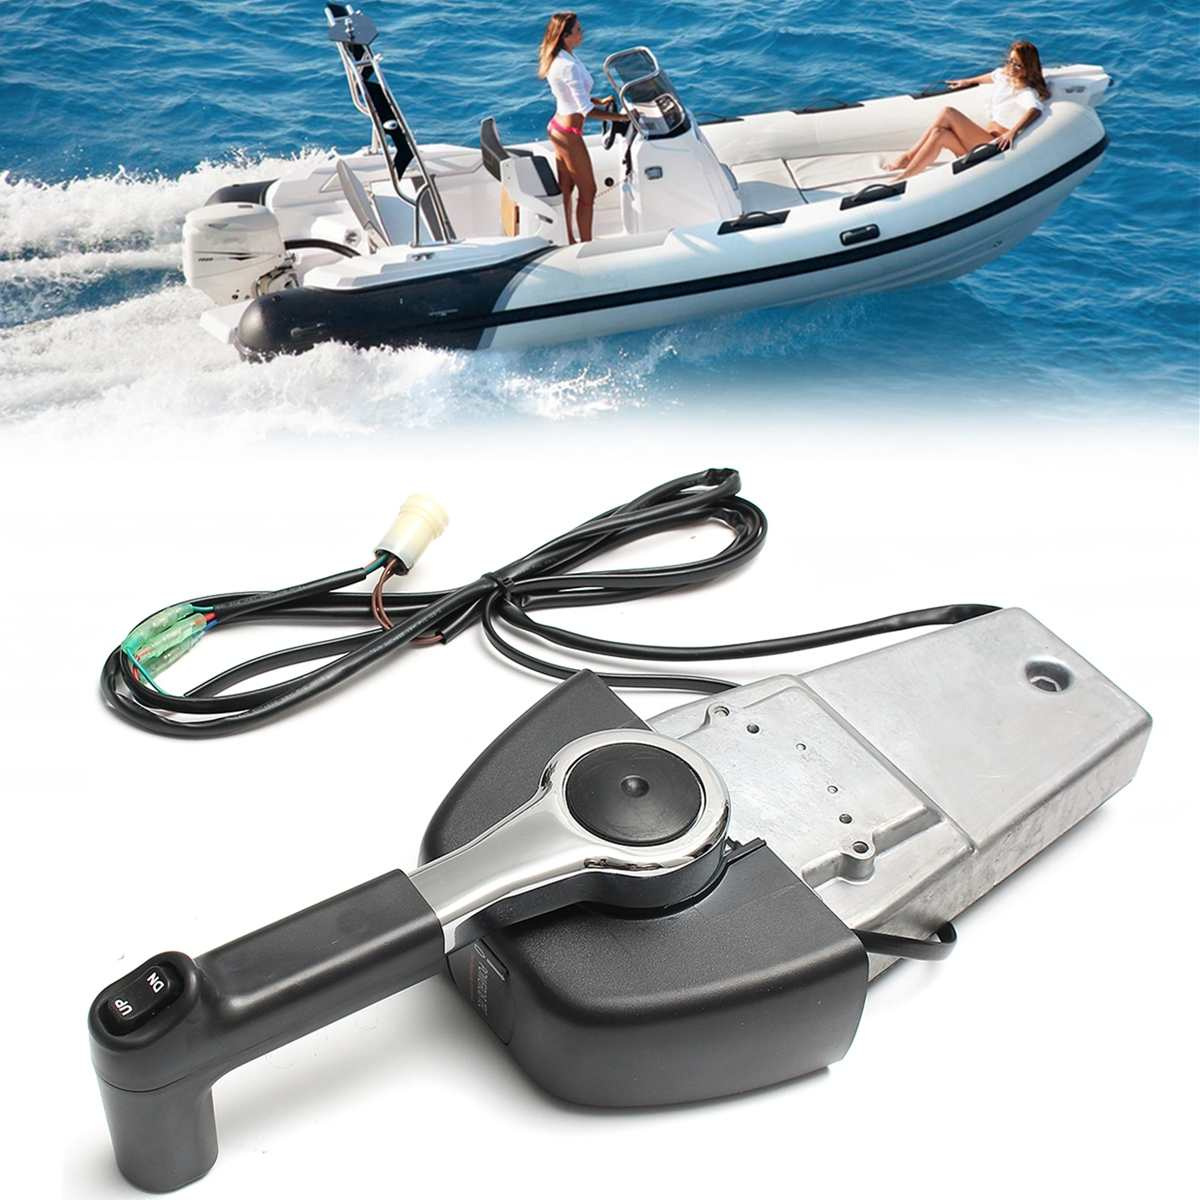 For Electric Start Yamaha Outboards Boat Outboard Remote Control Box 704 Premium Single Binnacle Control Streamlined Appearance